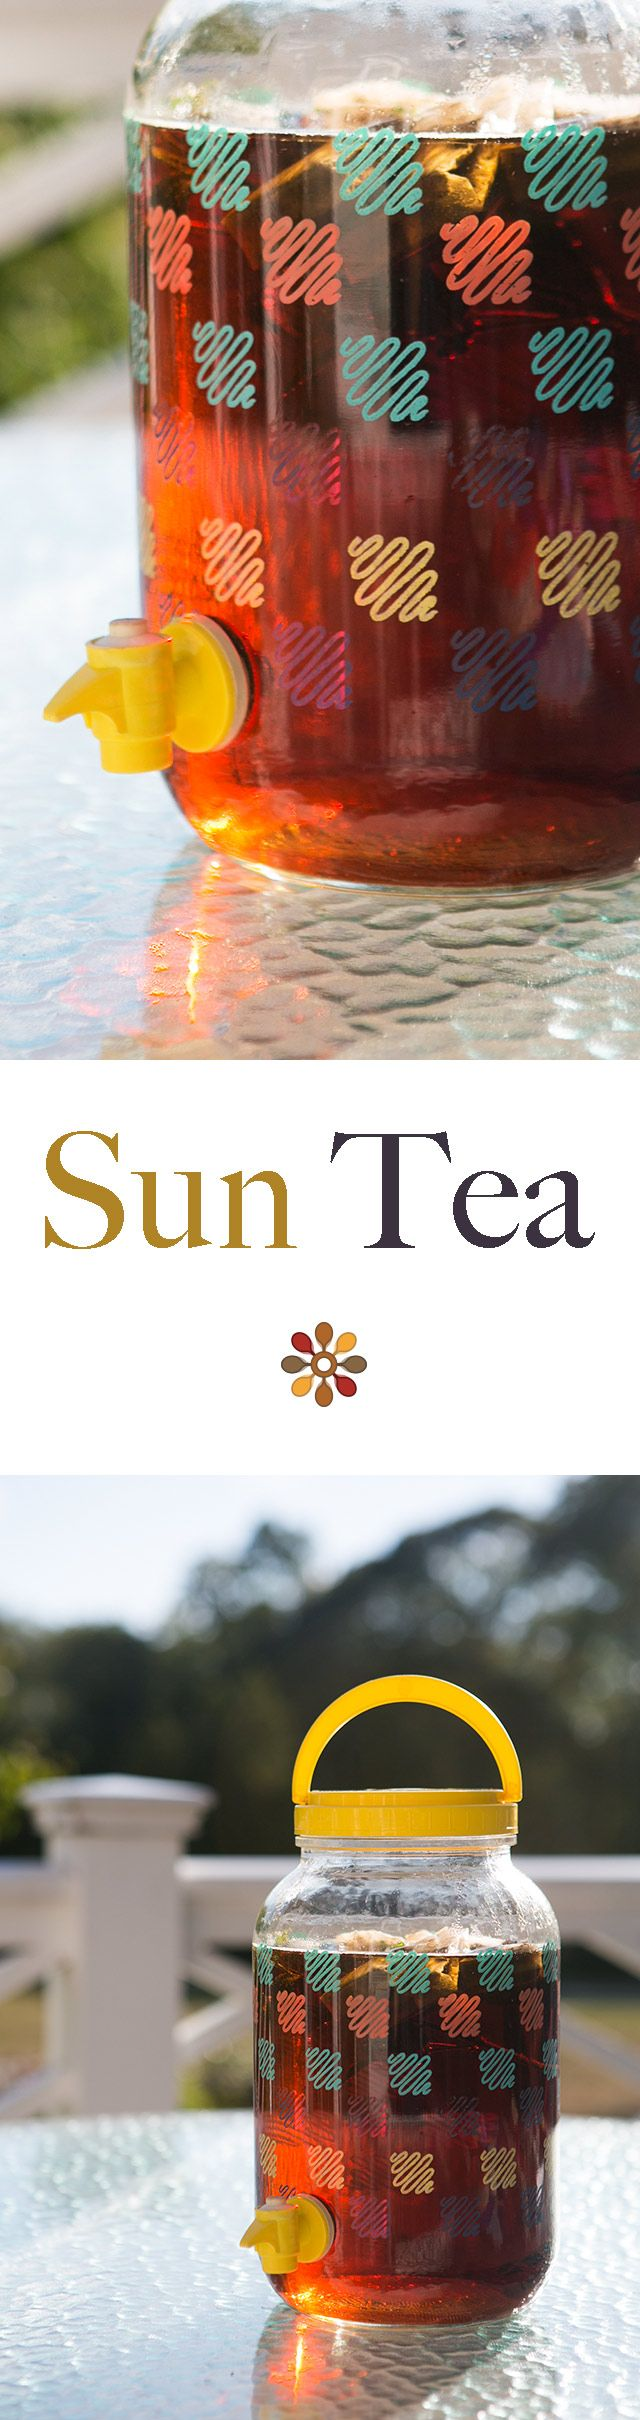 Sun Tea ~ A great way to make some tea without heating up your kitchen is to use the power of the sun to make sun tea. ~ SimplyRecipes.com